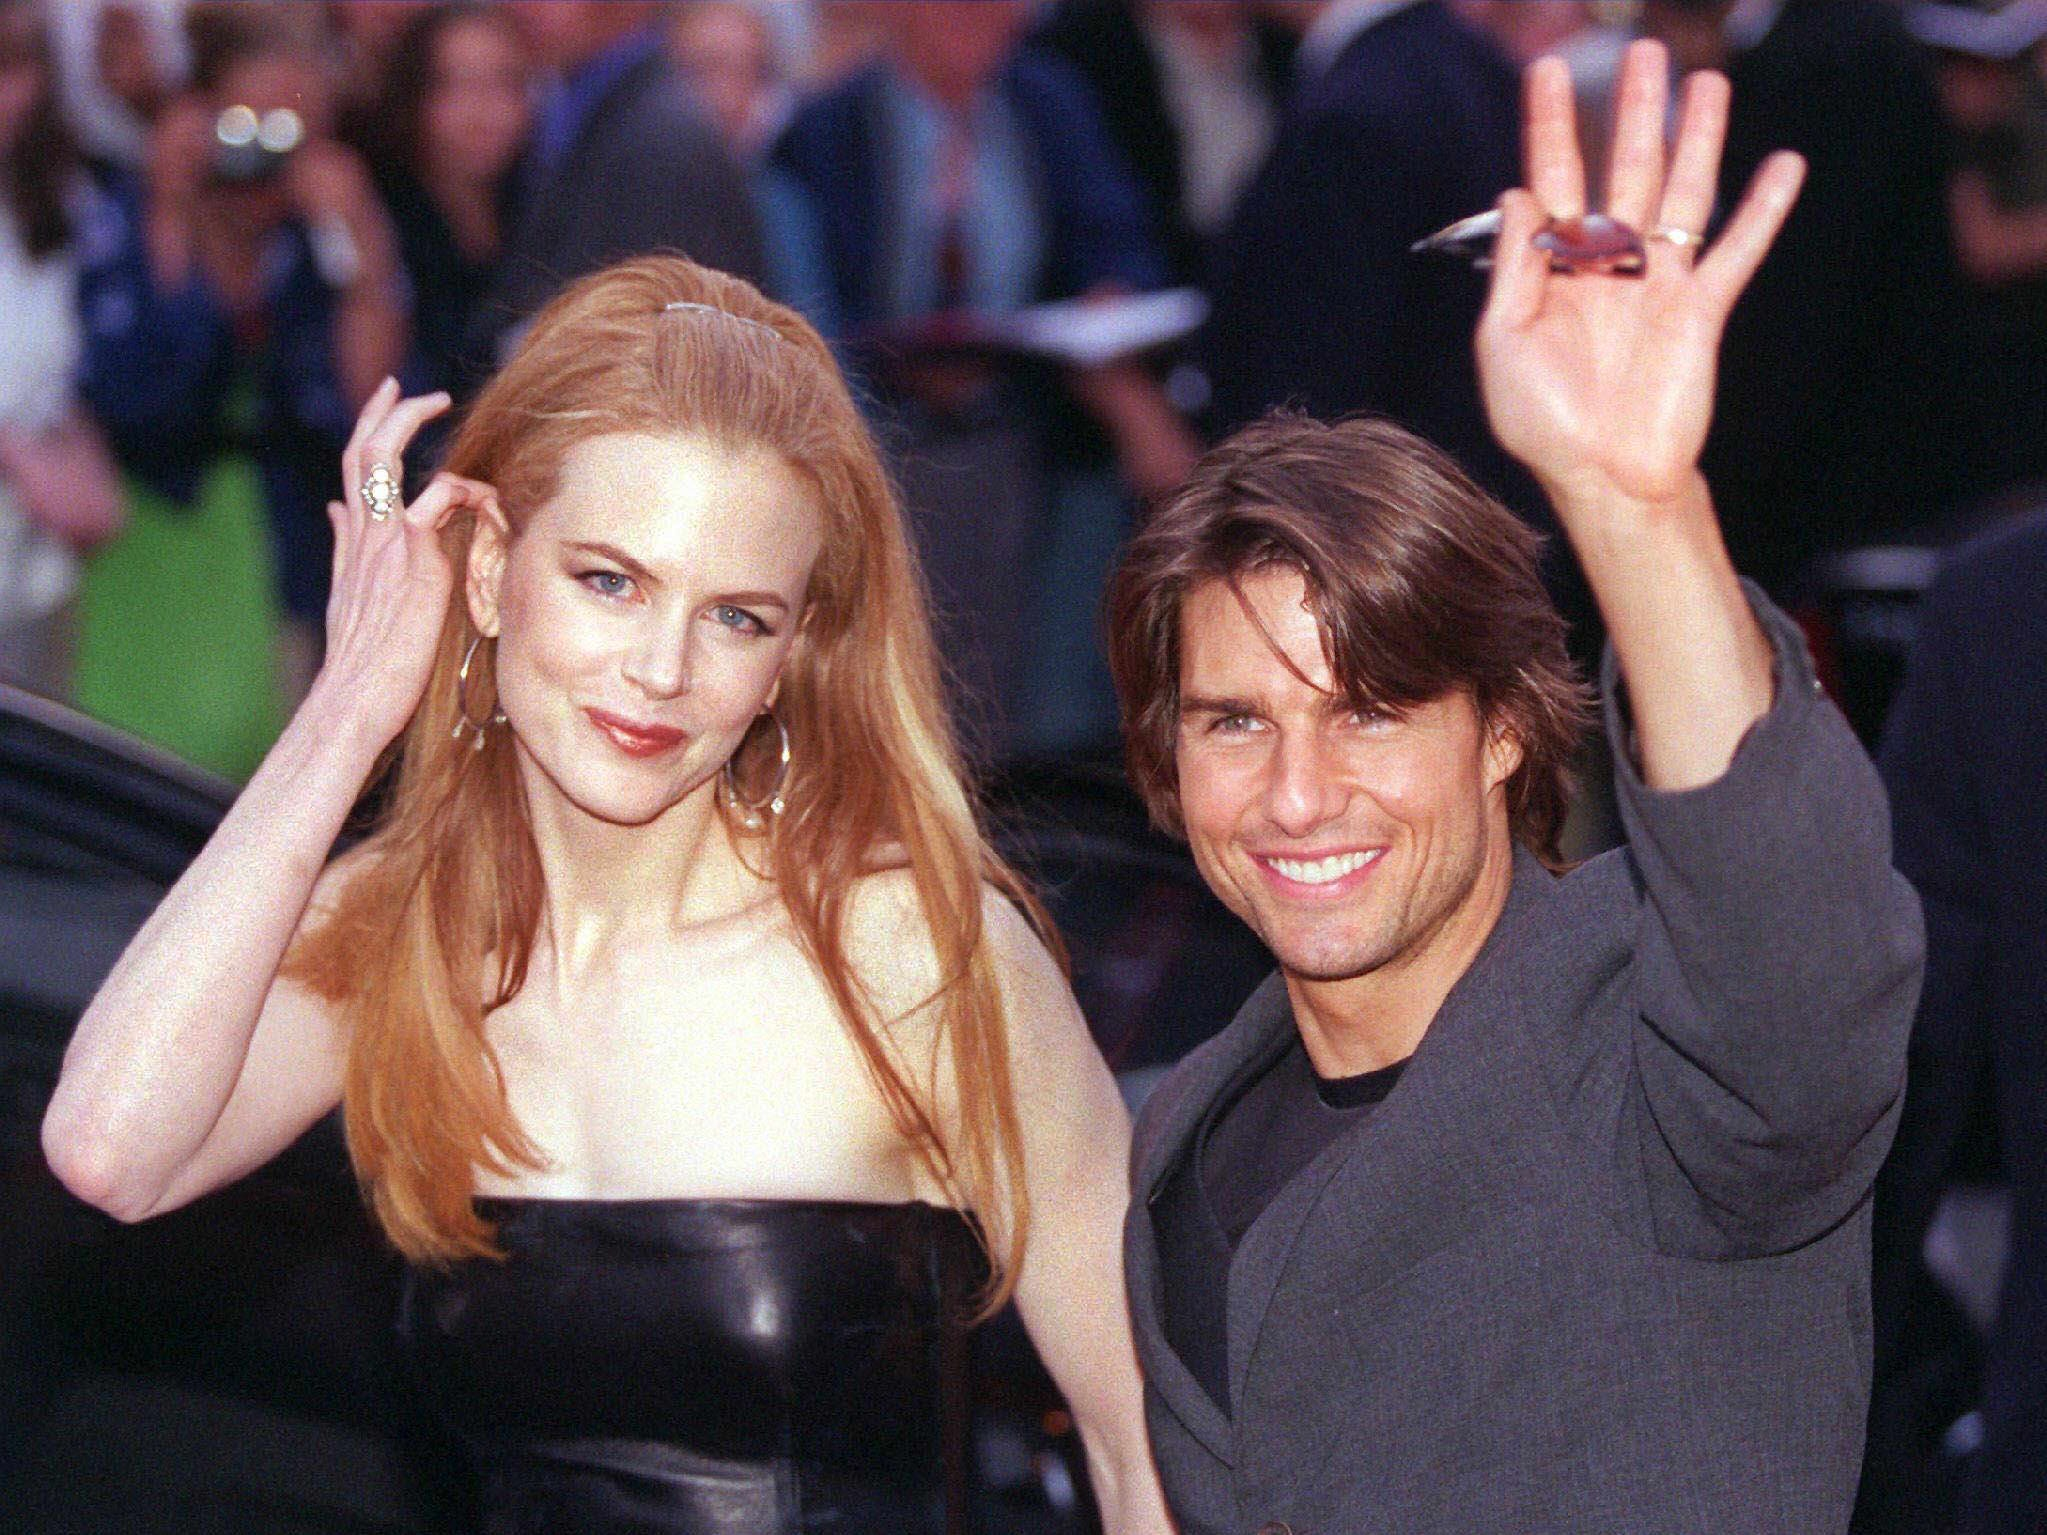 "(FILES): This 04 September 1999 file photo shows US actor Tom Cruise (R) and his wife, Australian actress Nicole Kidman, arriving for the German premier of ""Eyes Wide Shut"", the last work of late US director Stanley Kubrick, at the Cinemaxx cinema in Hamburg, Germany. According to reports 05 February 2001, Cruise and Kidman are divorcing.  AFP PHOTO/DPA/FILES/KAY NIETFELD ORG XMIT: HBG03"